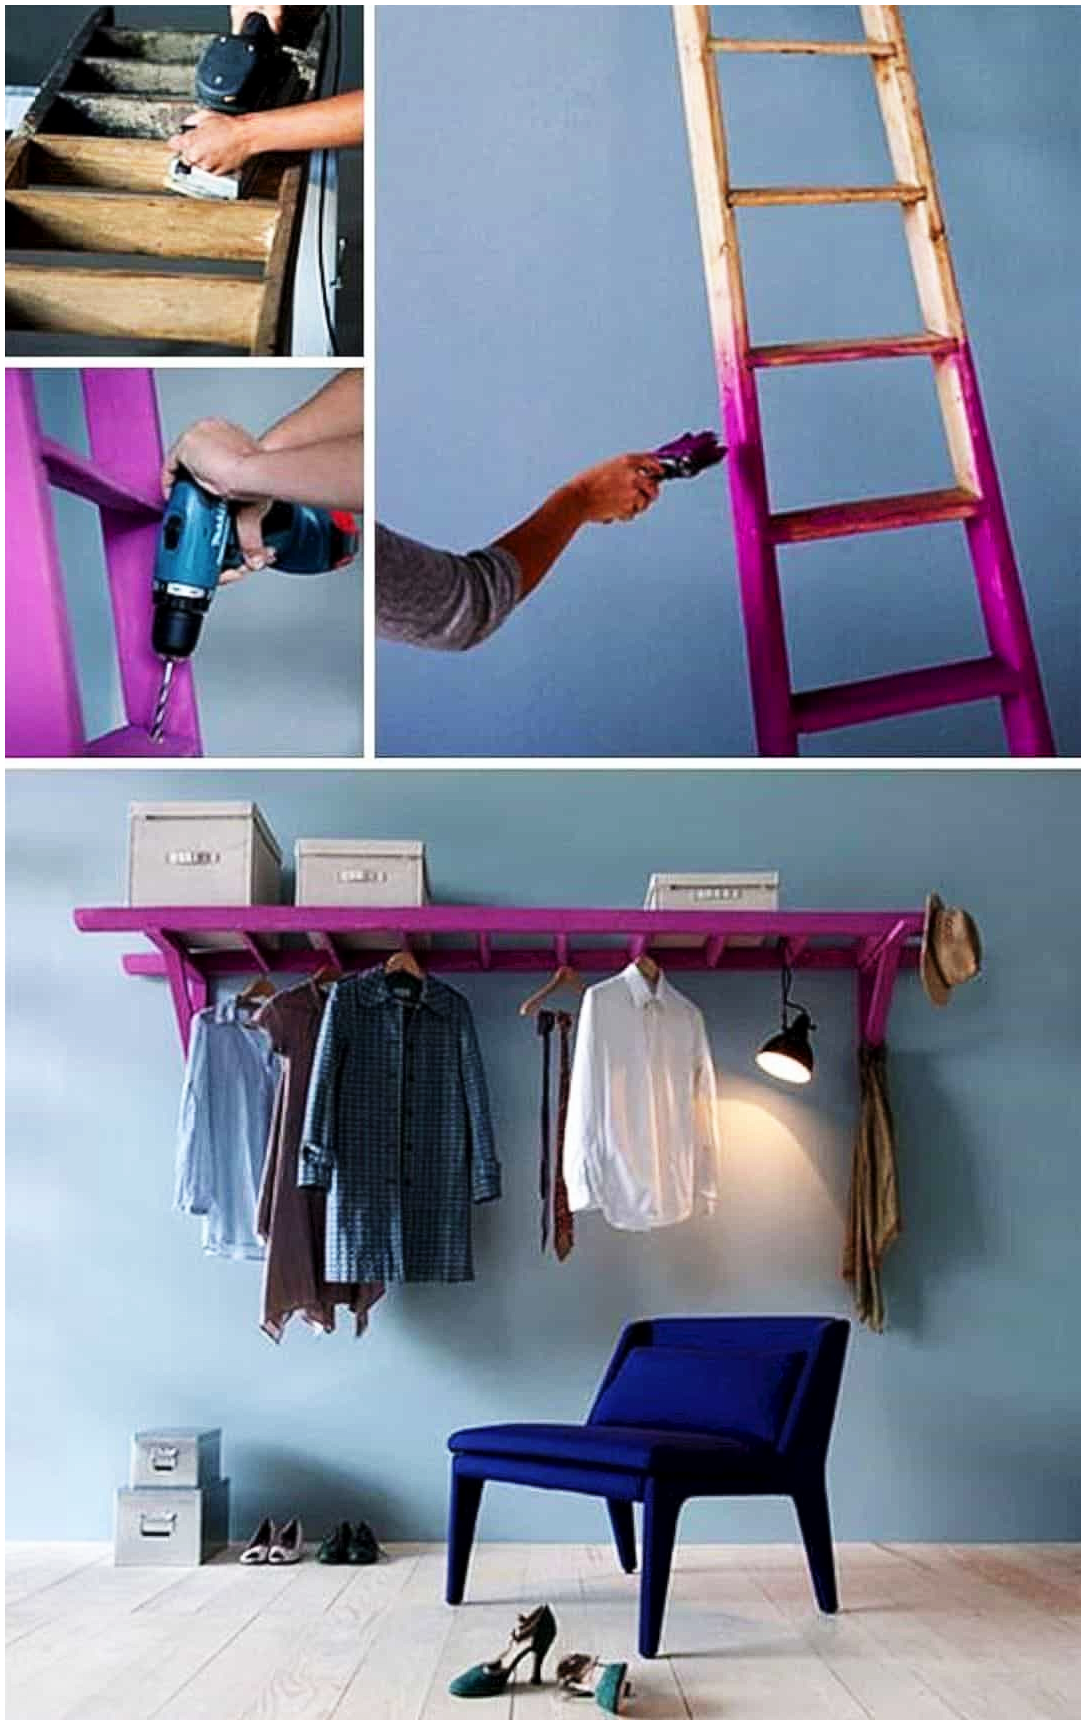 5 Ladder Wardrobe via Simphome